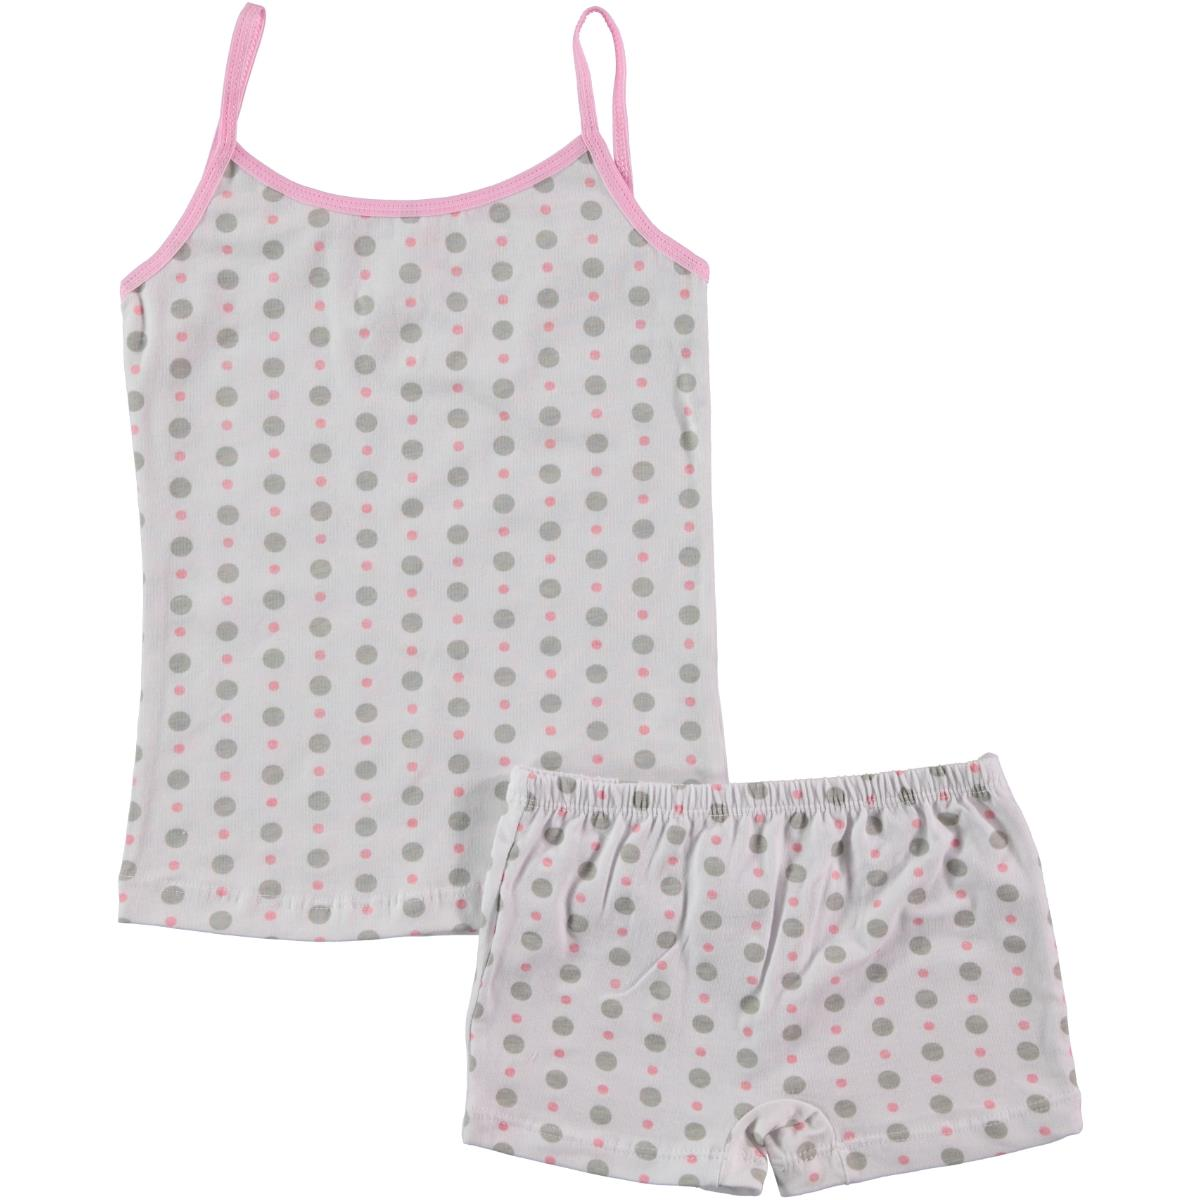 Civil Boy girl polka-dot underwear pink the ages of 2-10 team